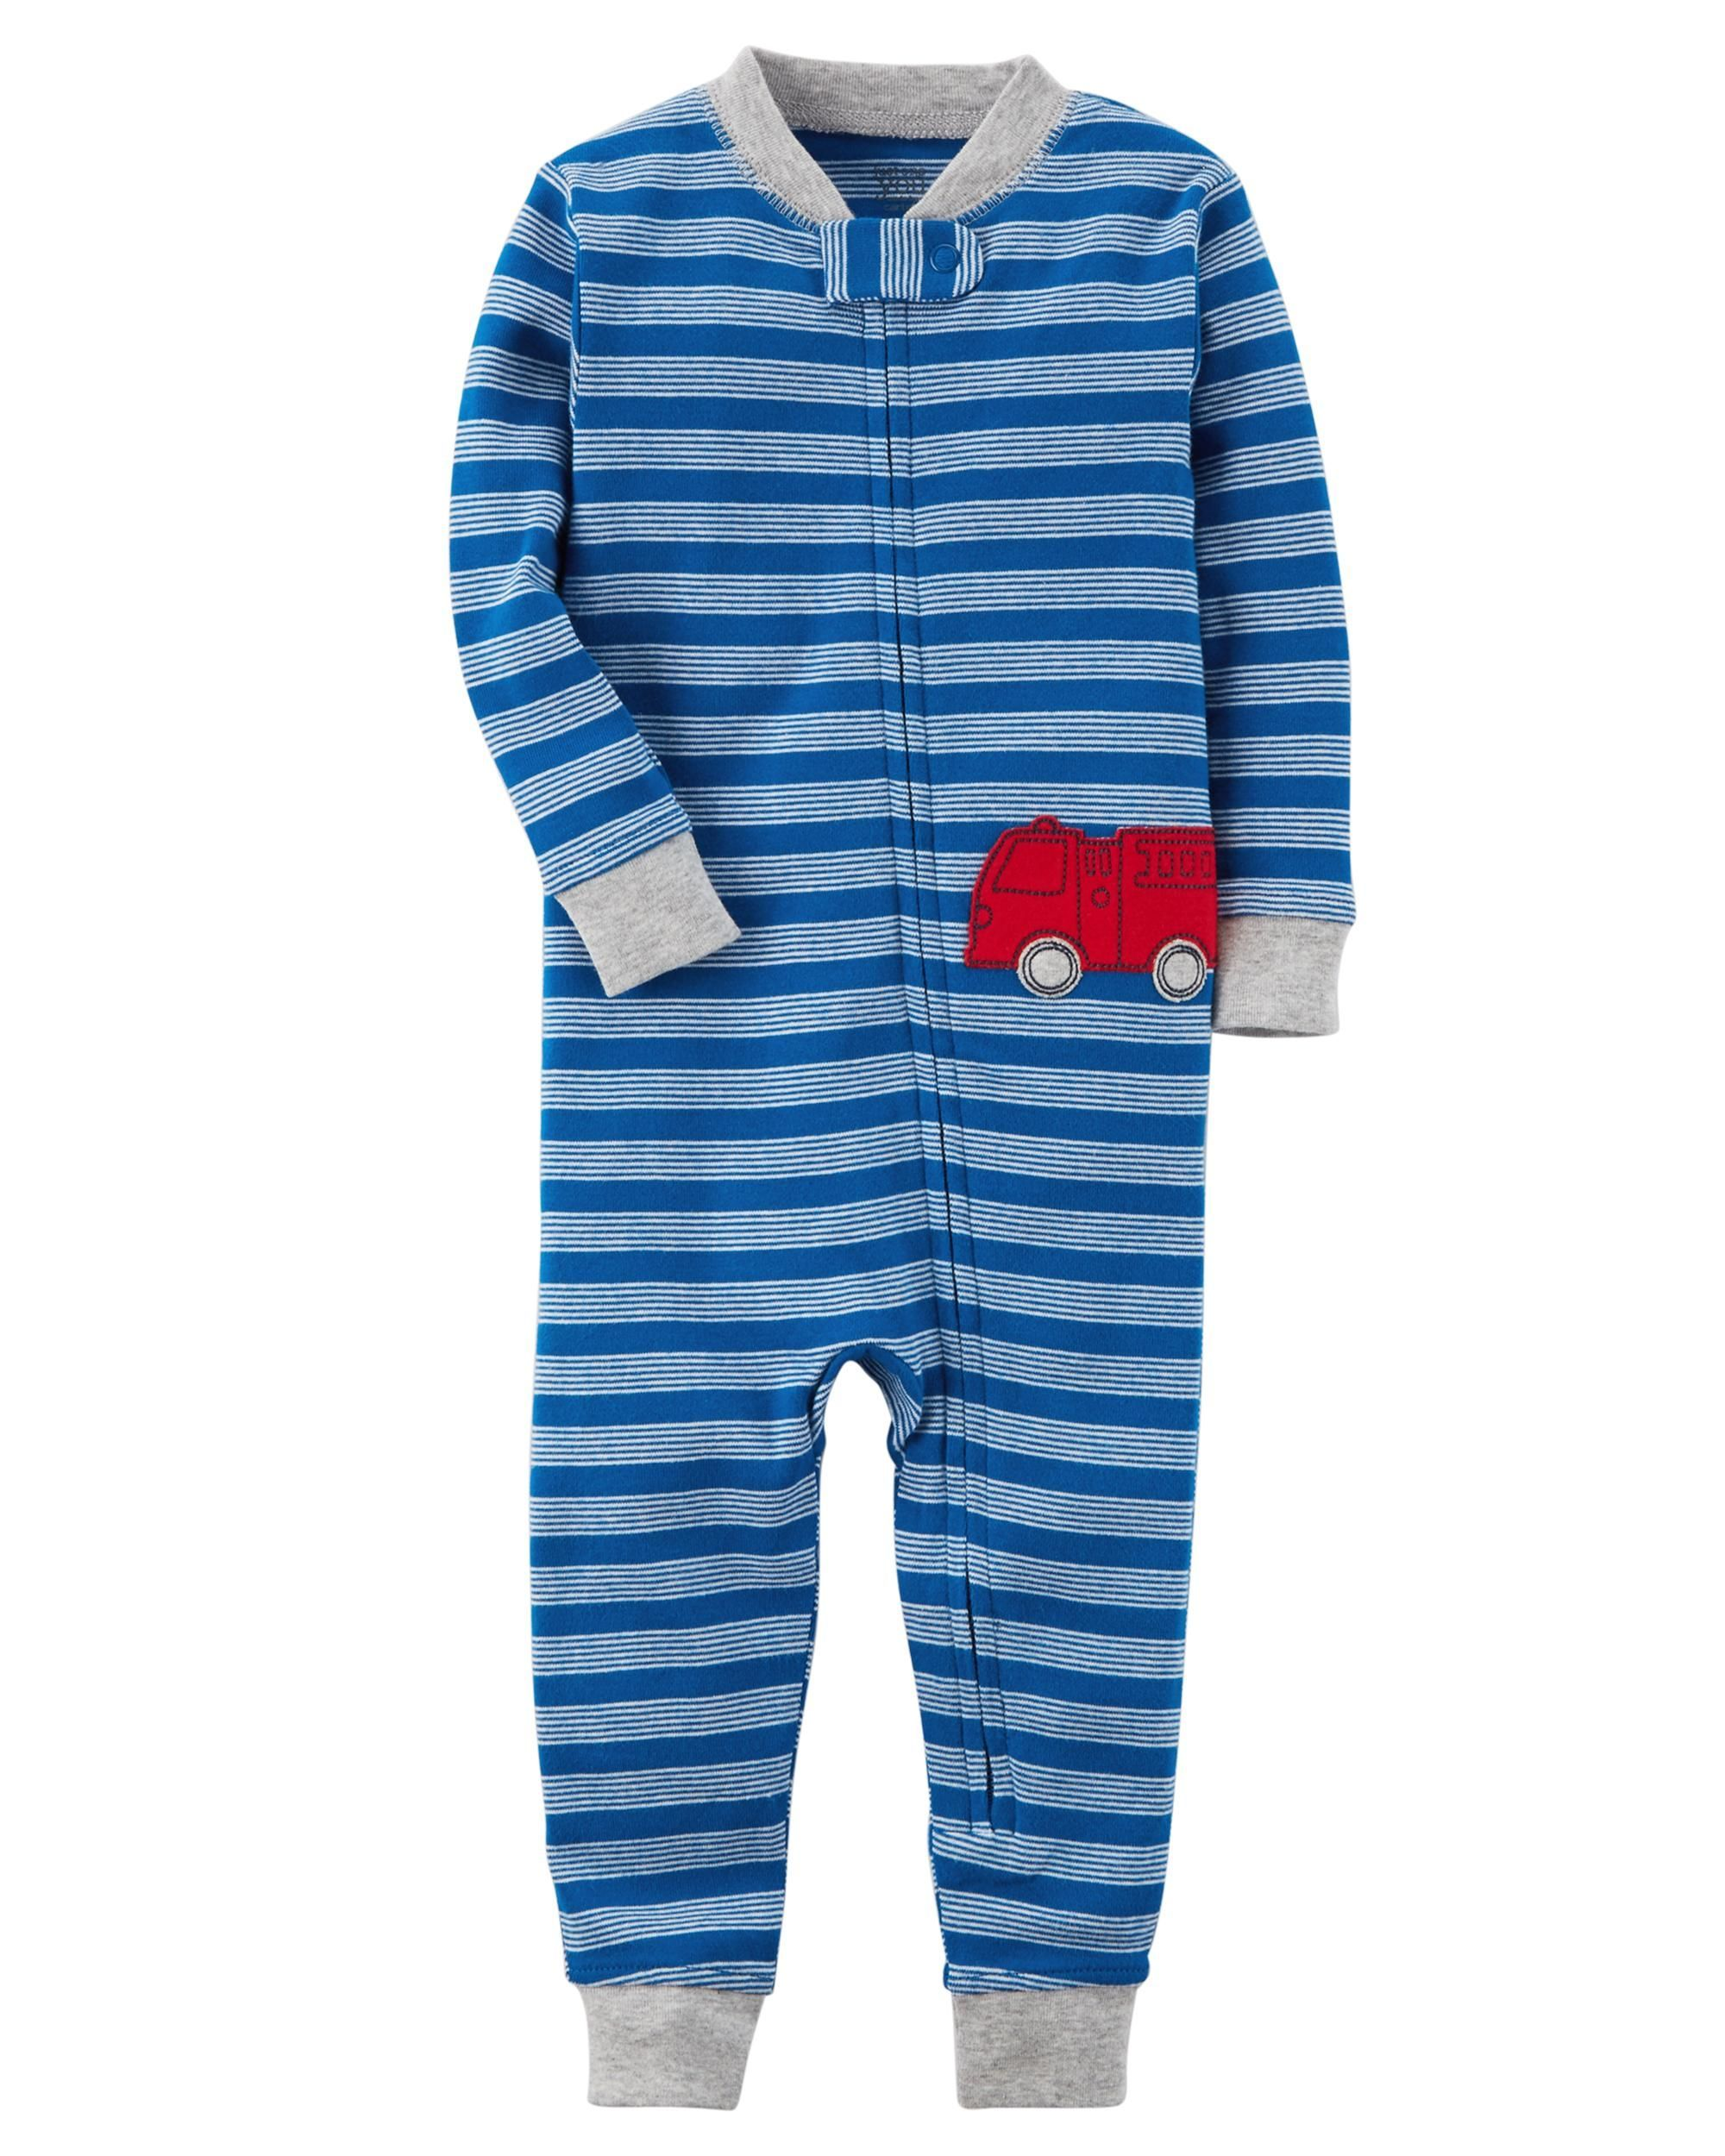 1017b88df 1-Piece Certified Organic Snug Fit Cotton Footless PJs